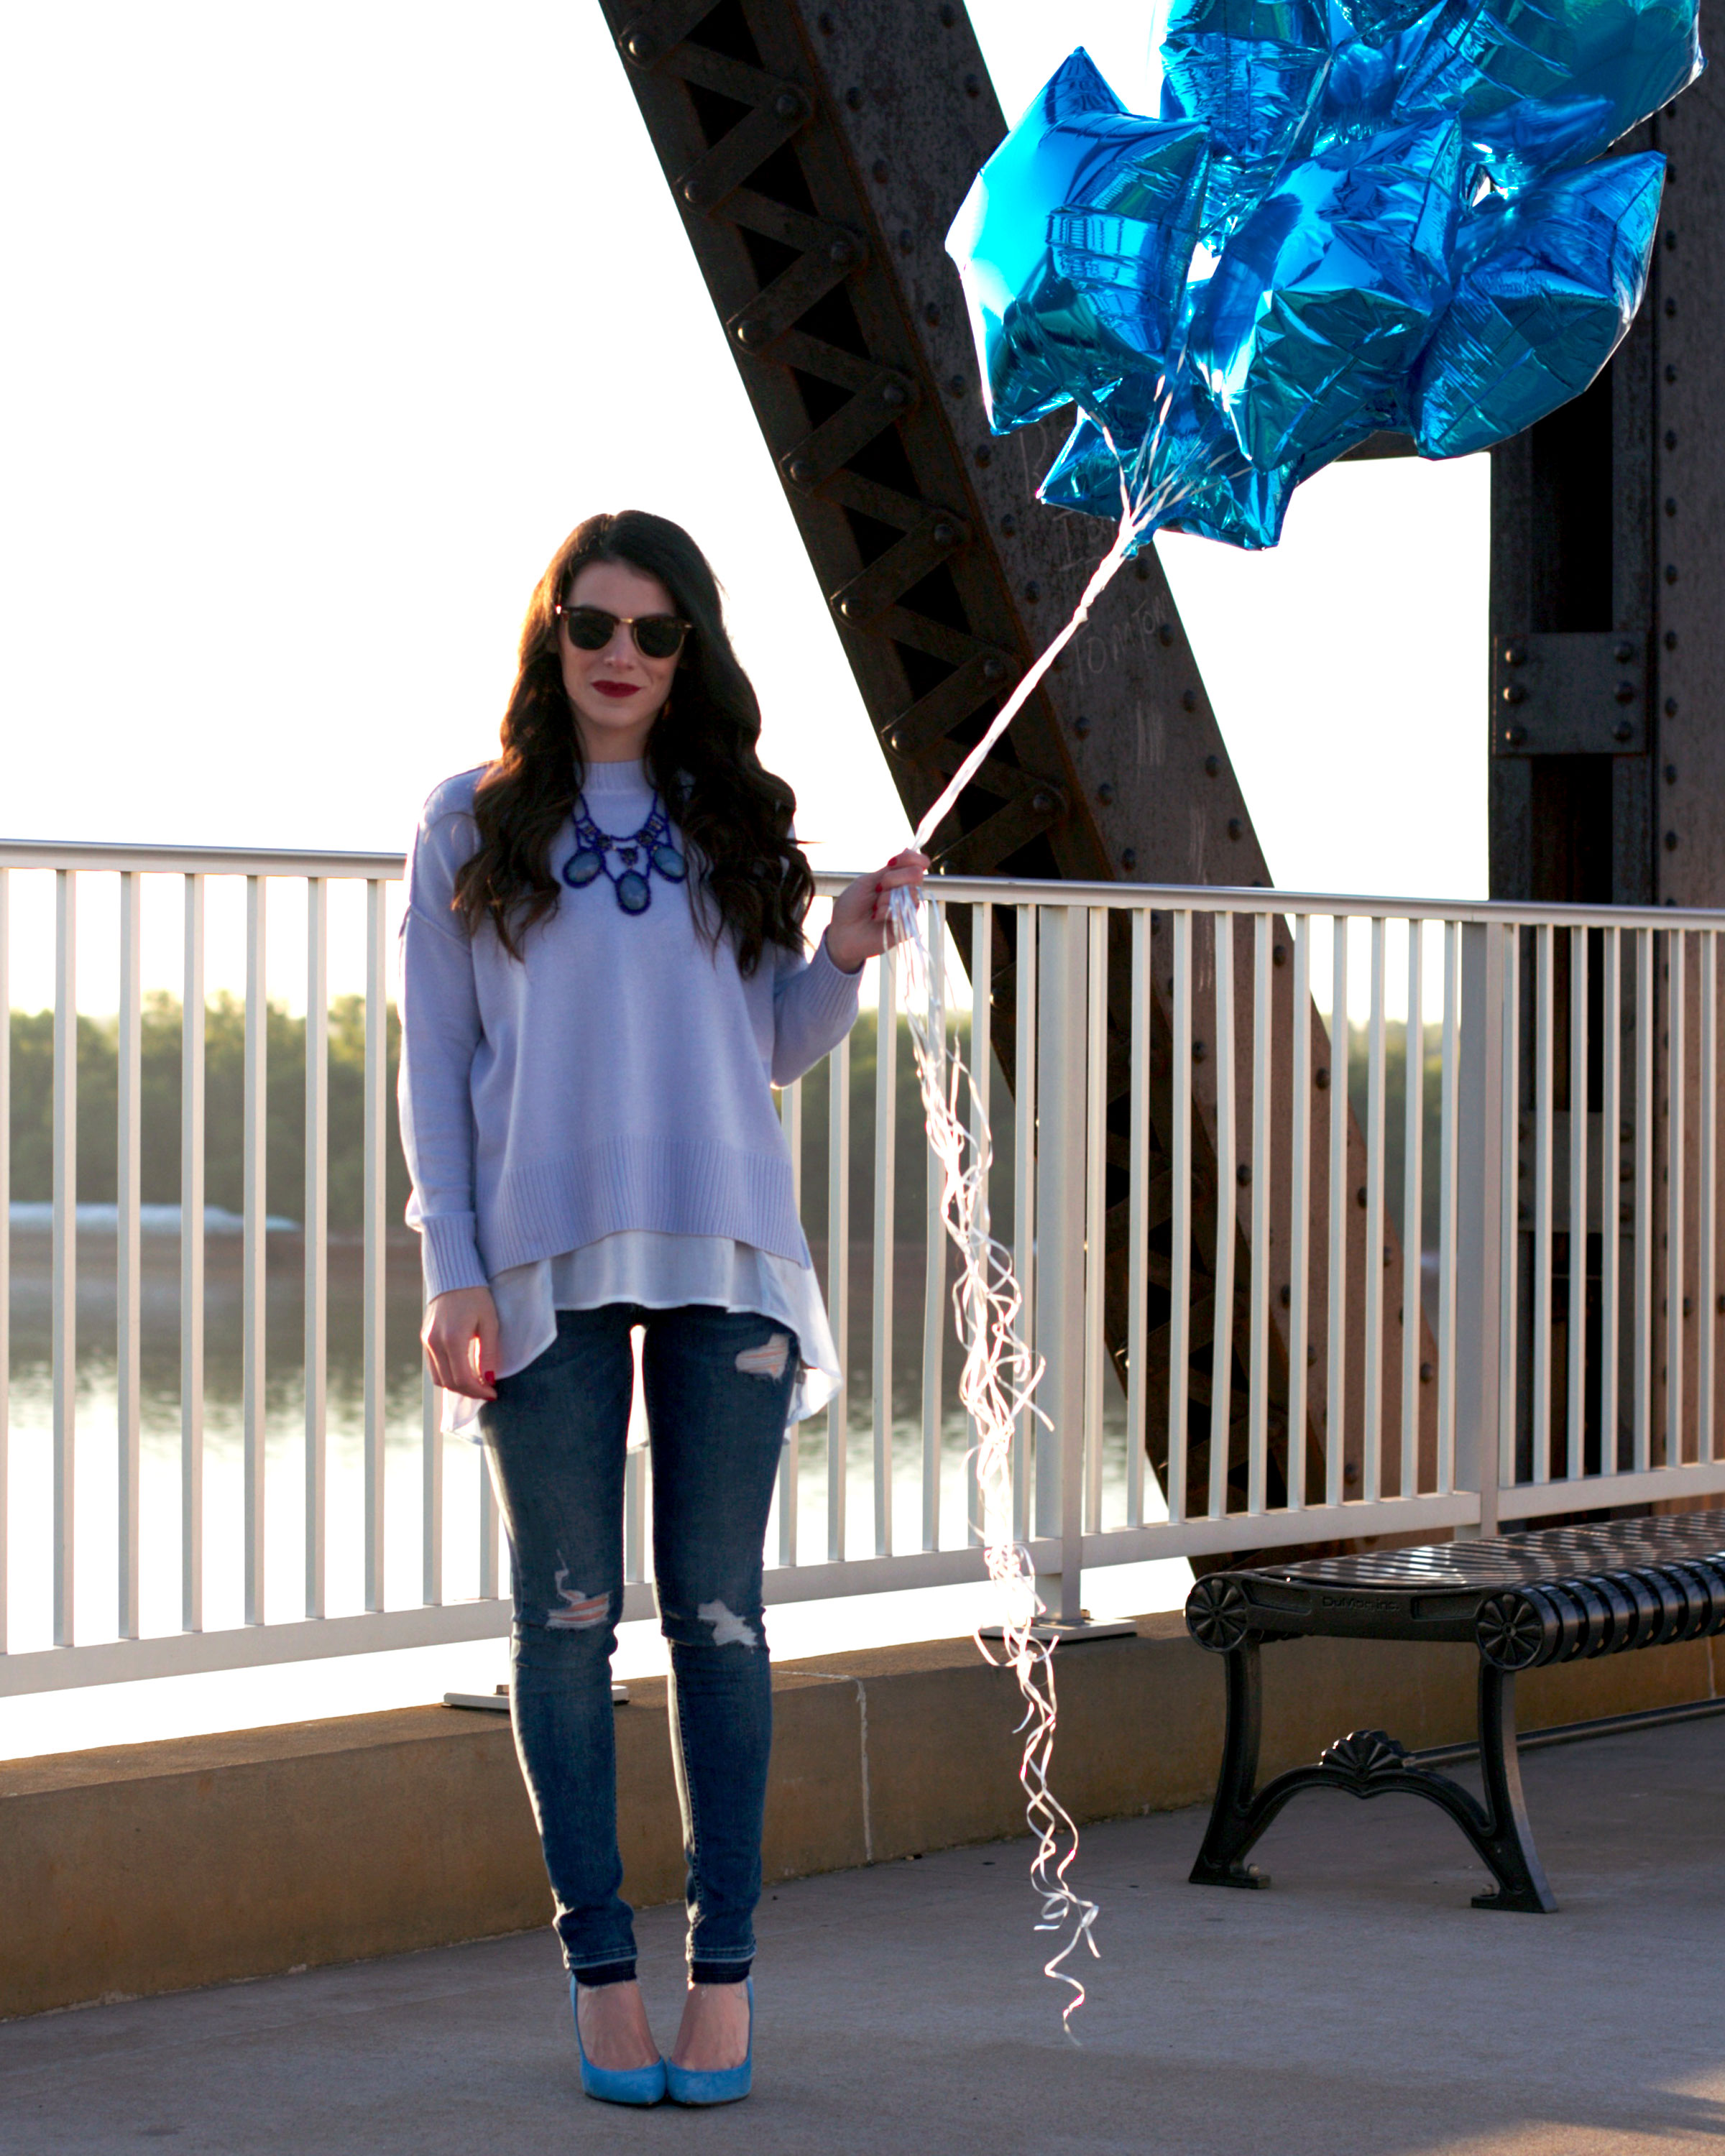 Fashion Blogger, Spring Layering, Spring Sweater, Monochromatic Outfit, Blue Star Balloons, Birthday Balloons, J.Crew Field Jacket, Sunflowers, Cole Haan Handbag, Jessica Simpson Claudette Pumps